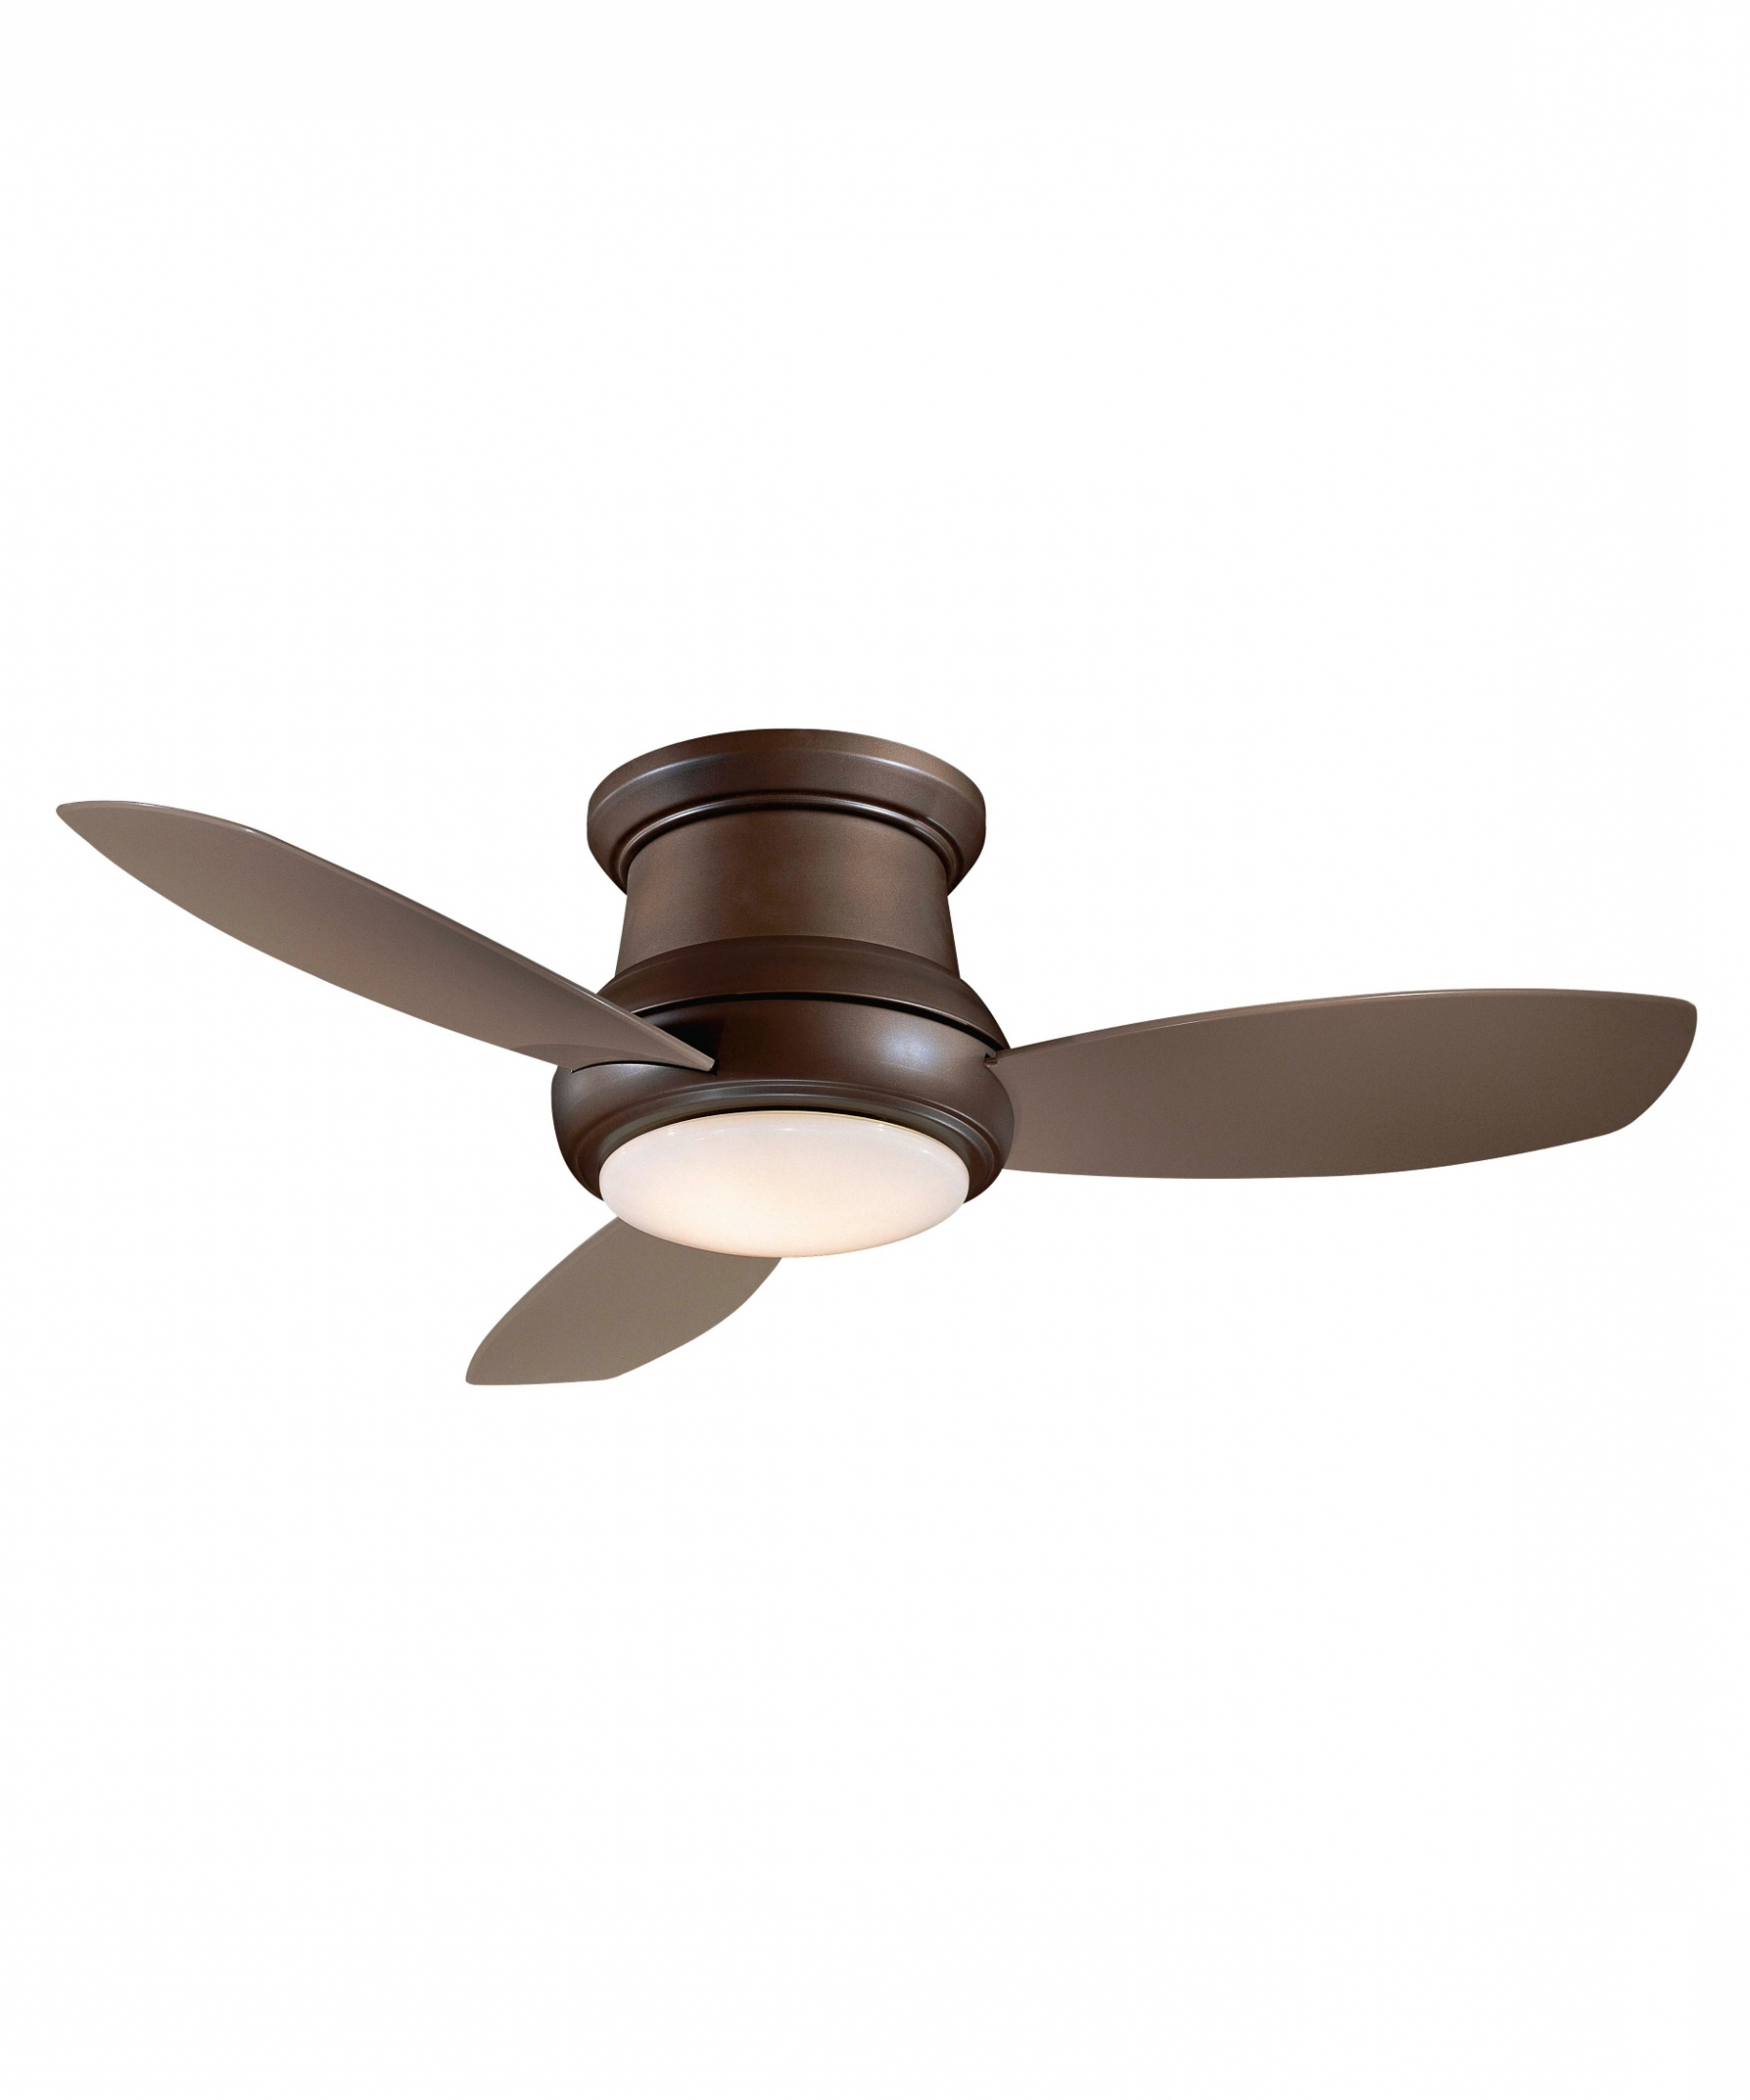 Home Decor: Growth Flush Mount Outdoor Ceiling Fan With Light Fans Within Most Recently Released Flush Mount Outdoor Ceiling Fans (View 11 of 20)